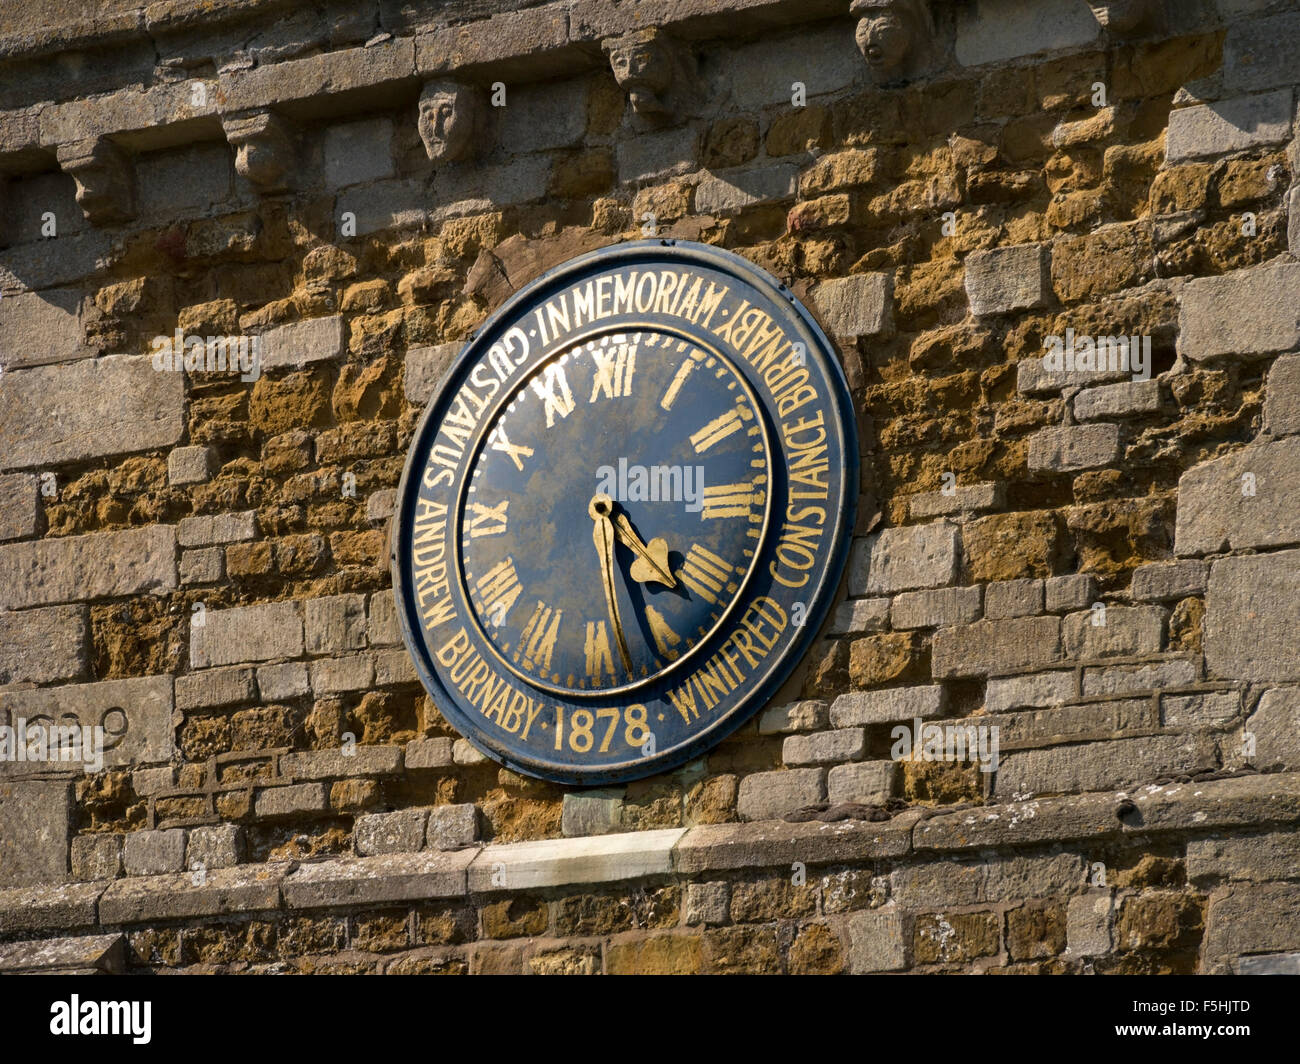 Old church clock face with gold roman numerals and memorial inscription, St. Mary's church, Burrough, Leicestershire, - Stock Image